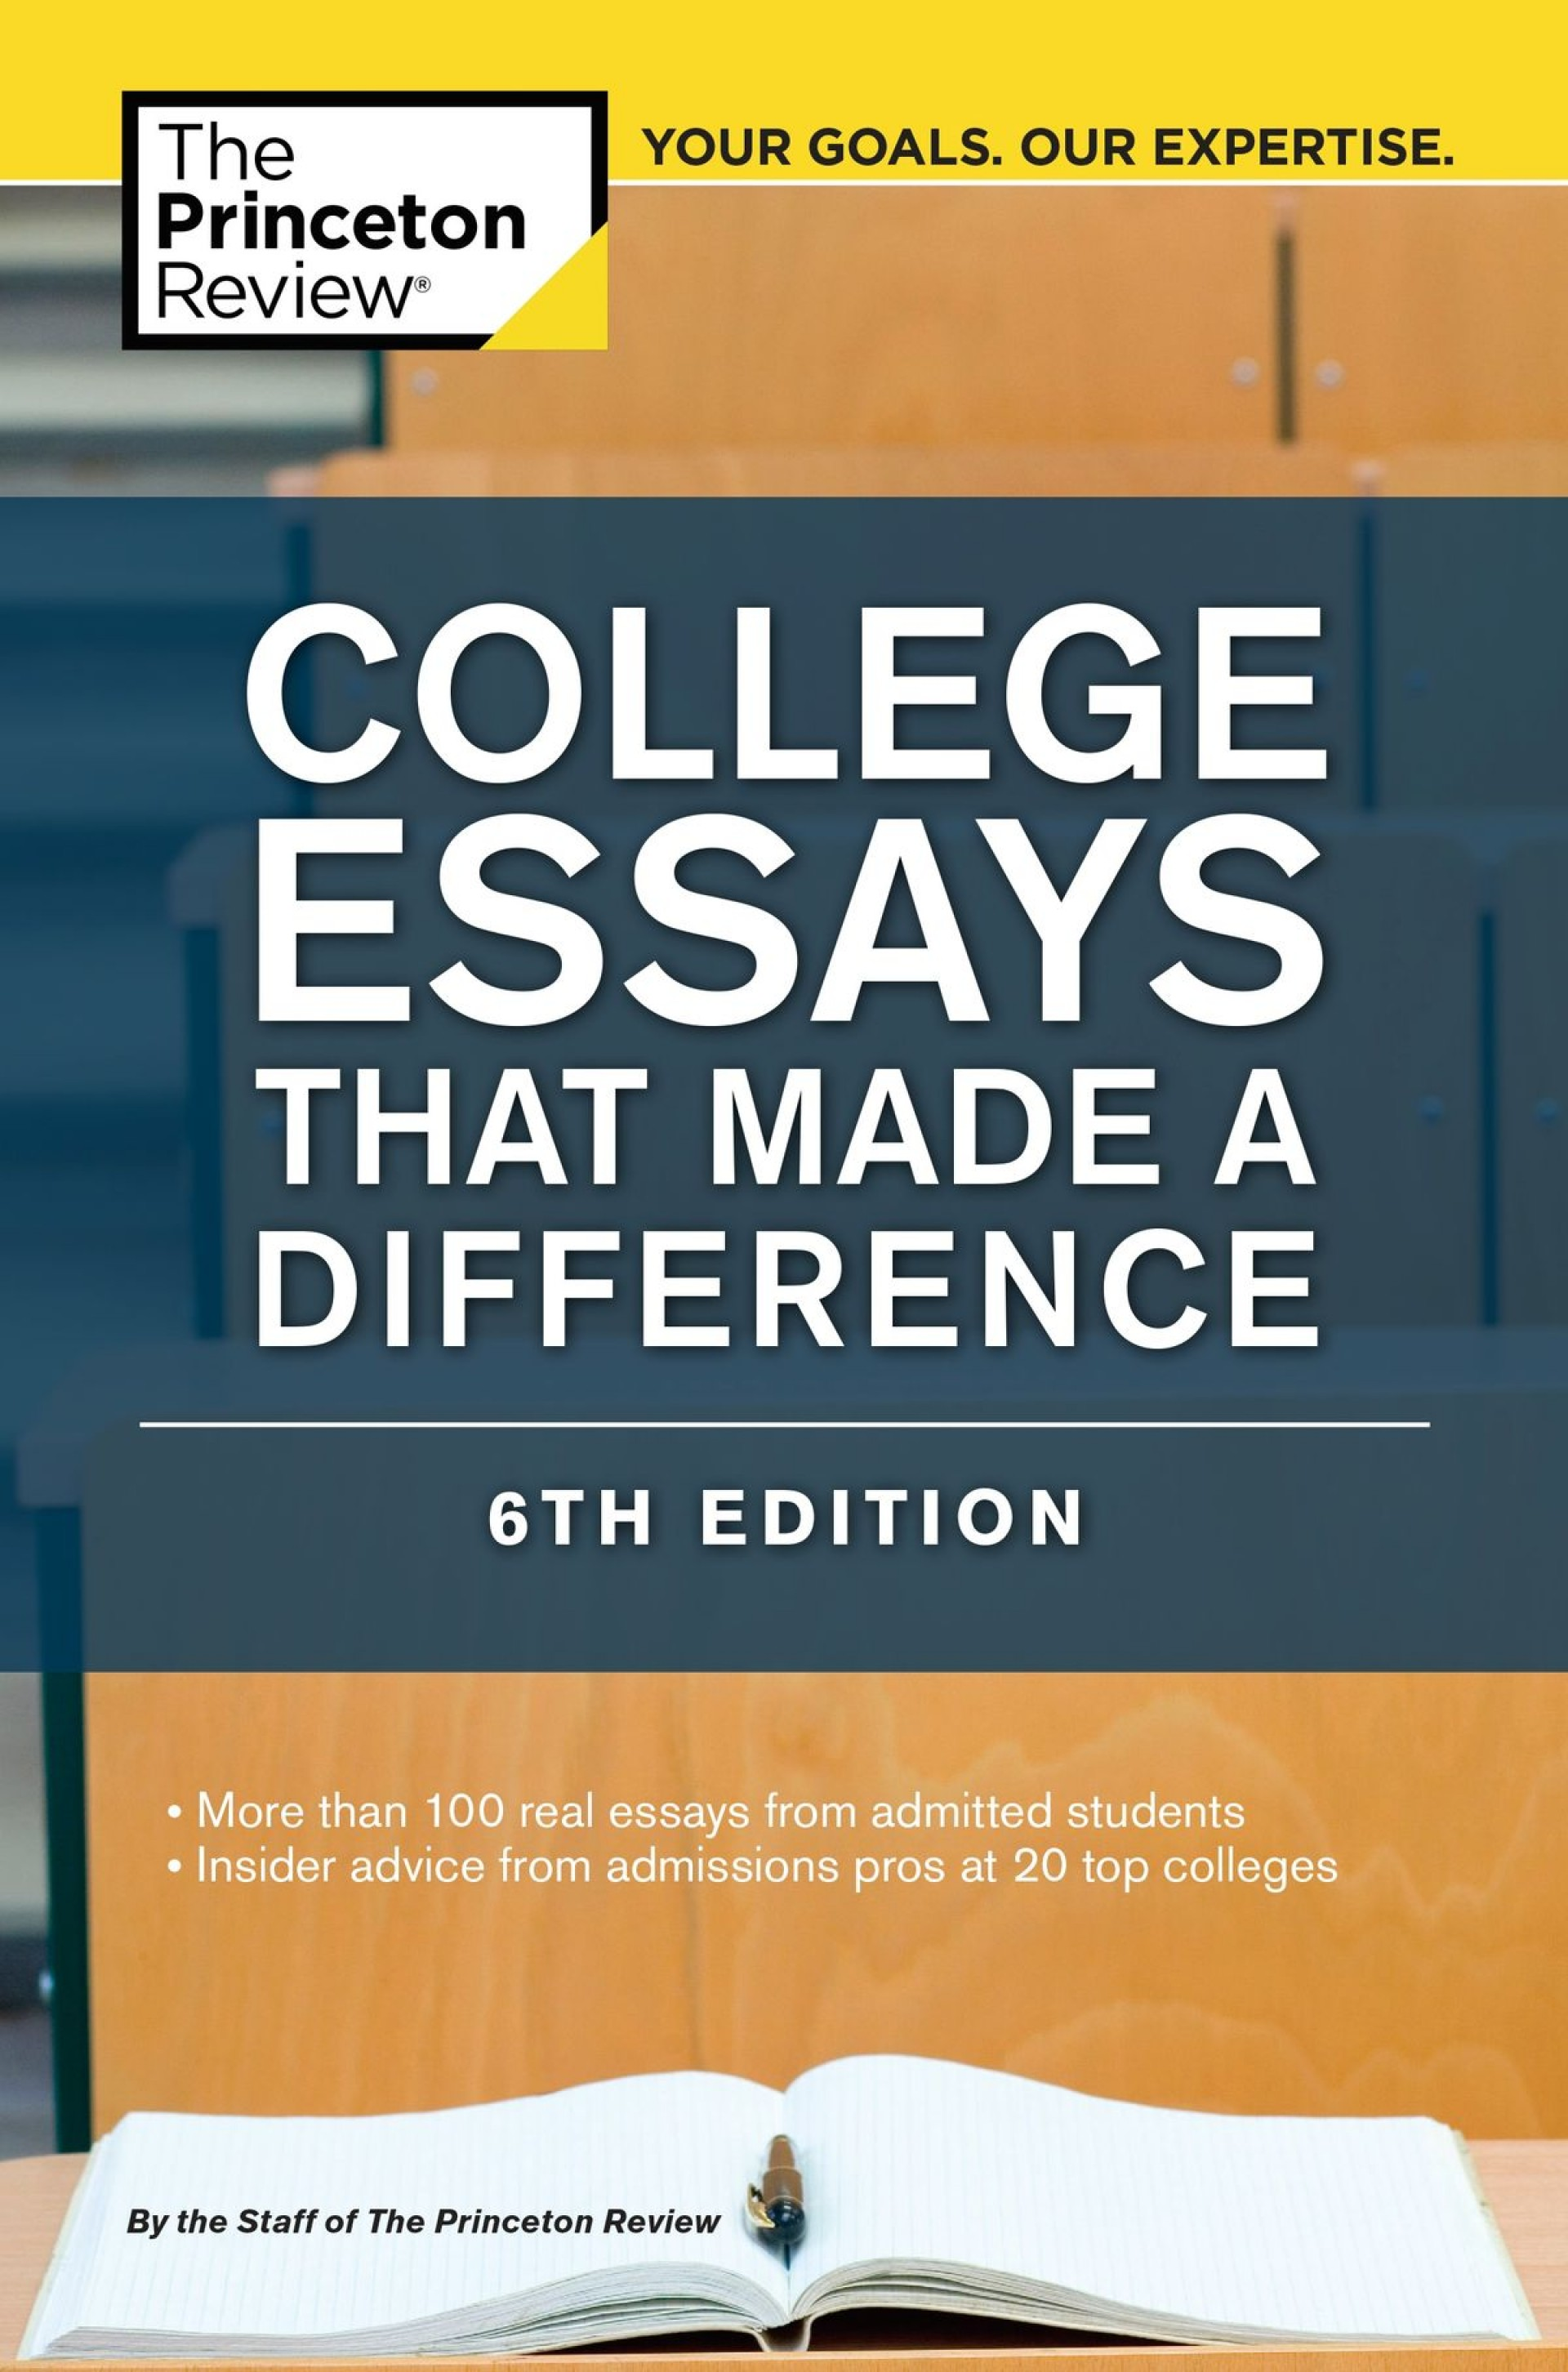 023 Princeton Essays Essay Example College That Made Difference 6th Shocking 2018 Review Grader Help 1920